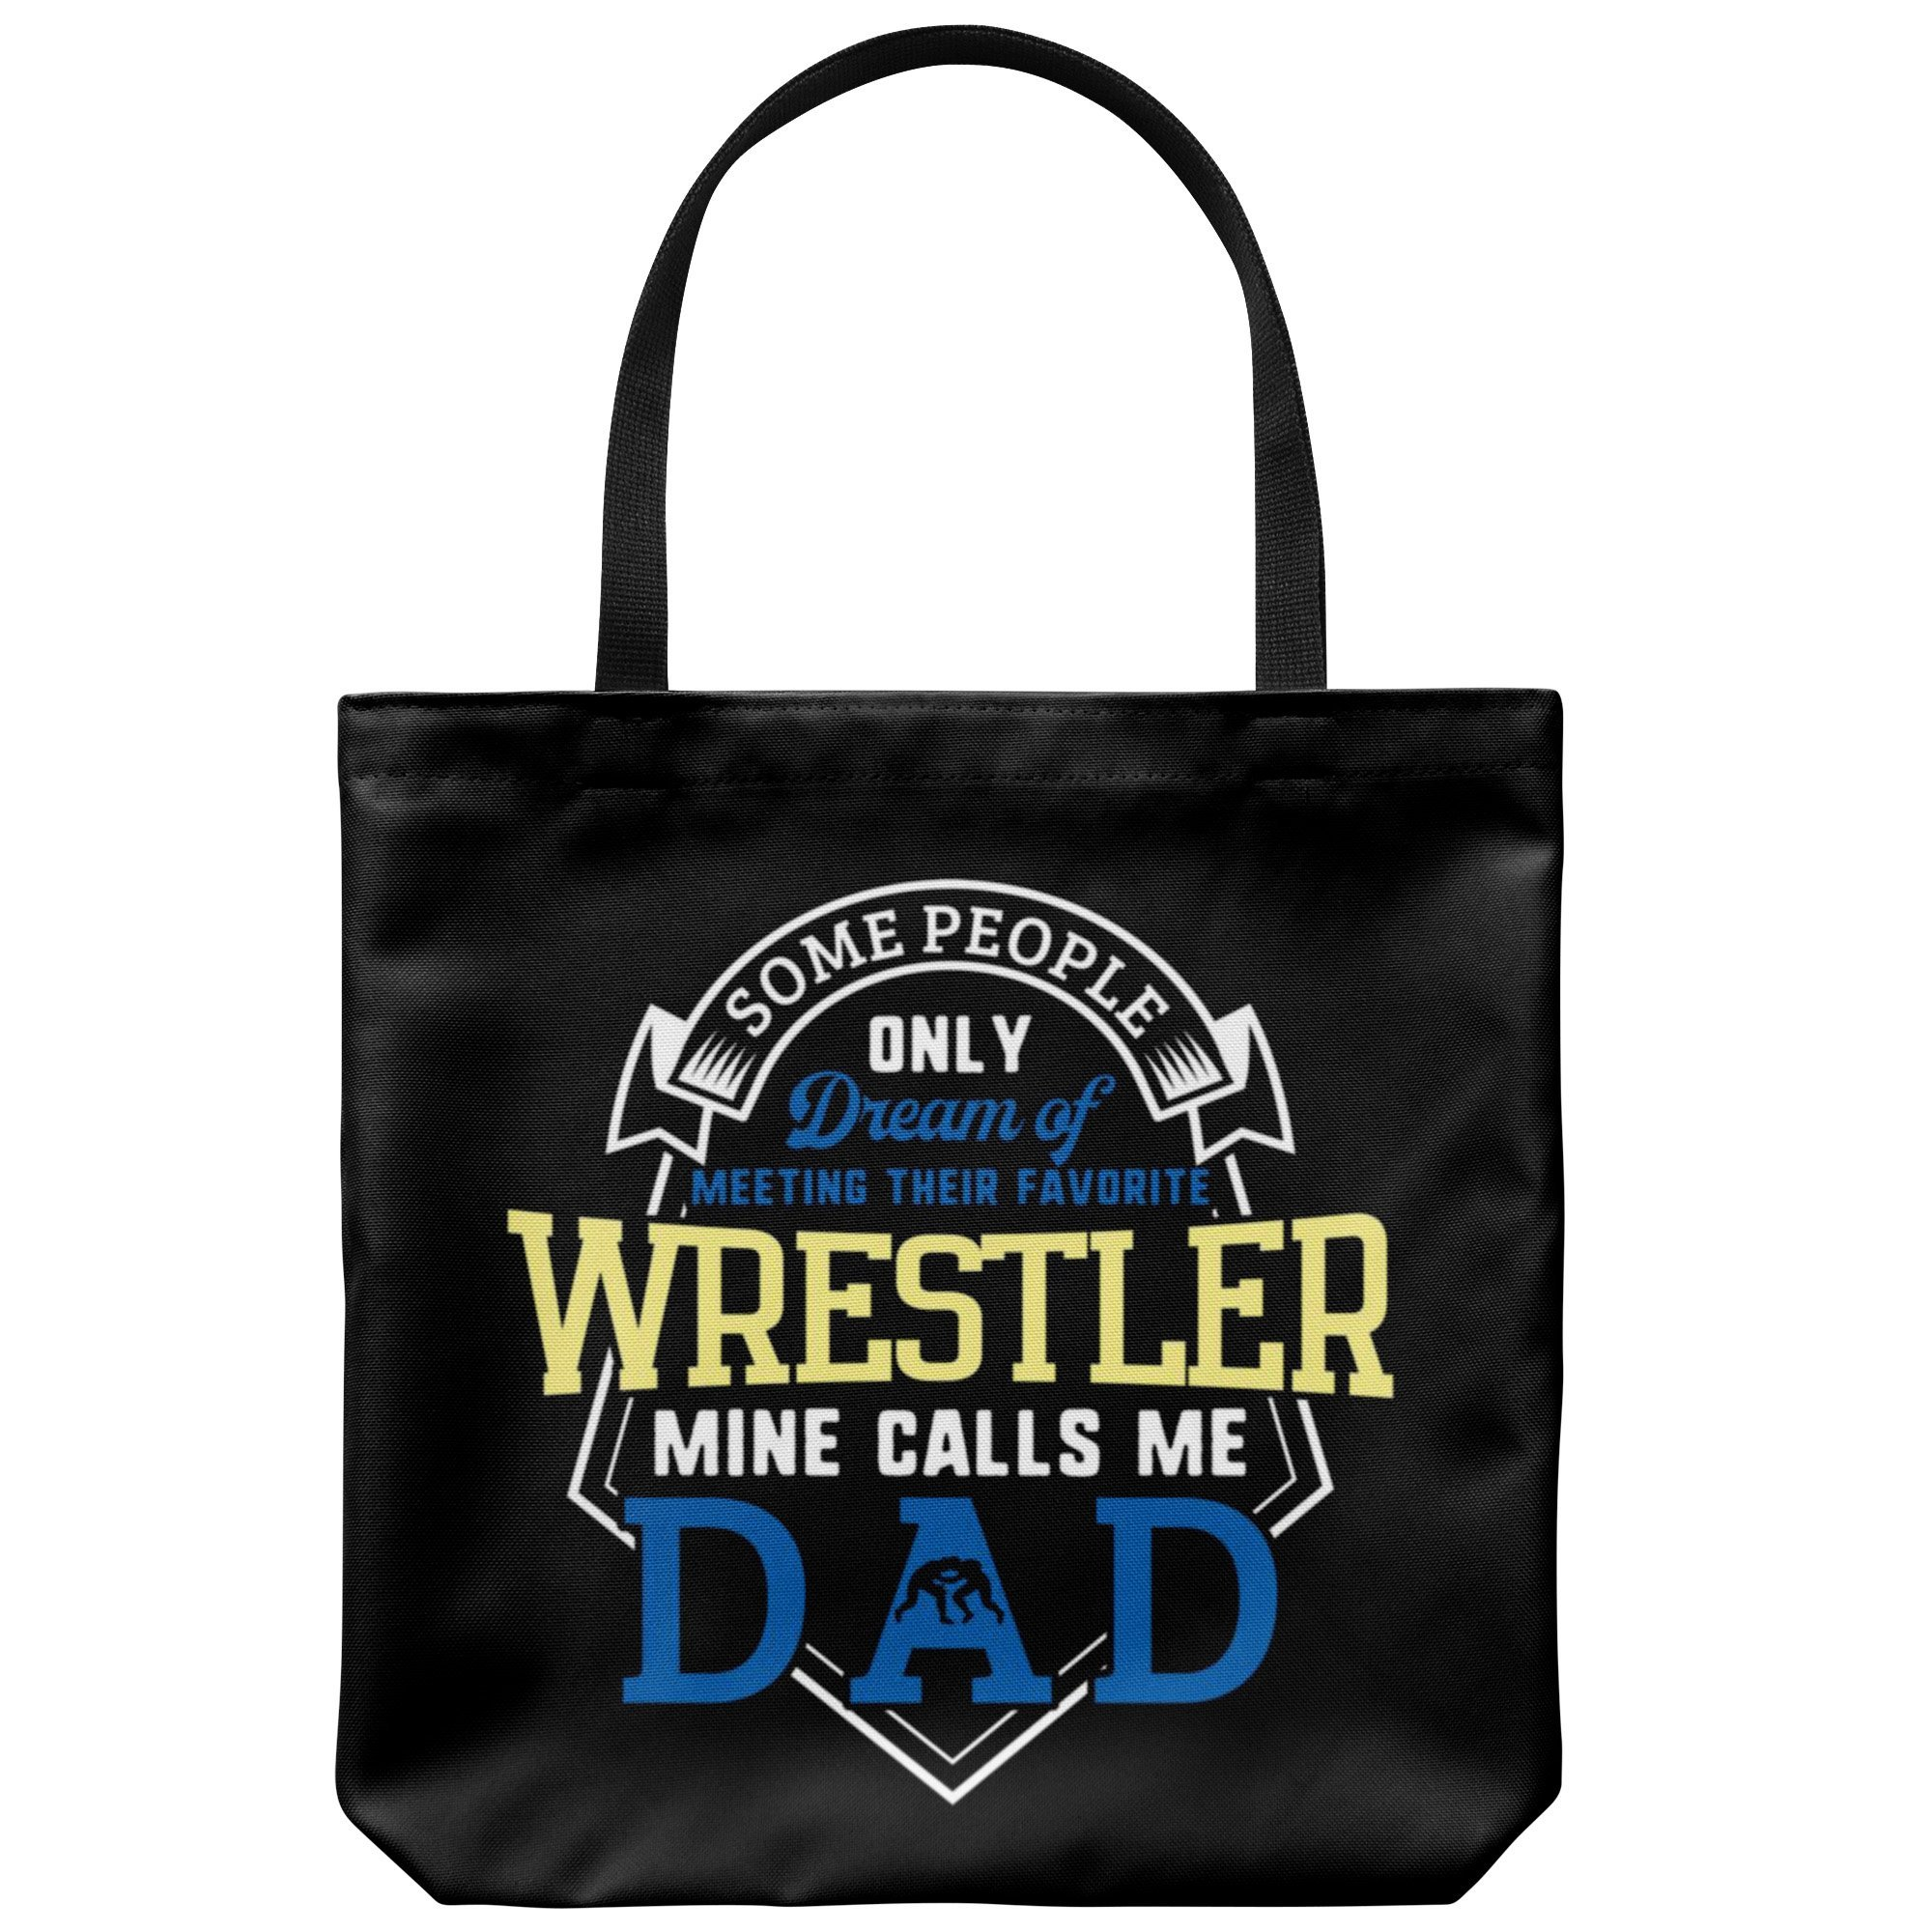 Wrestling Dad Canvas Tote Bag Funny Father's Day Wrestler Gifts Proud - Dream